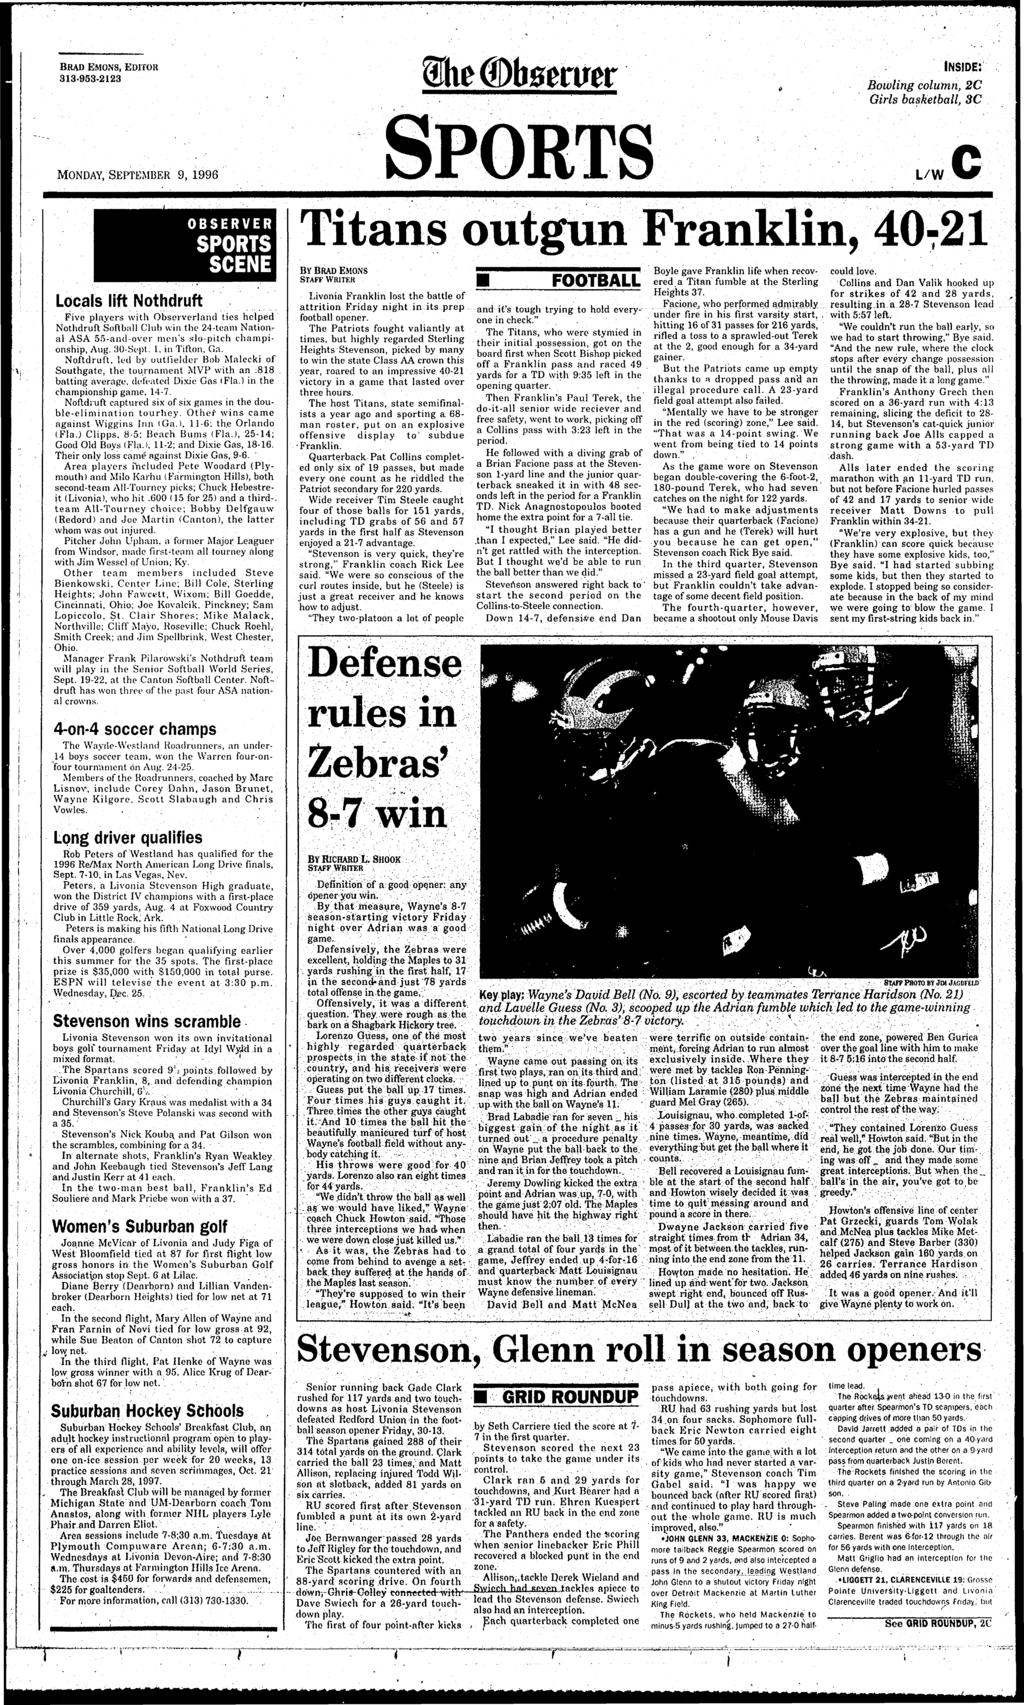 BRAD EMONS, EDTOR 313-953-2123 fhe (Sfmmx NSDE; Bowlng column, 2C Grls basketball, 3C MONDAY, SEPTEMBER 9,1996 L/W C OBSERVER SPORTS SCENE Locals lft Nothdruft Fve players wth Observerland tes helped